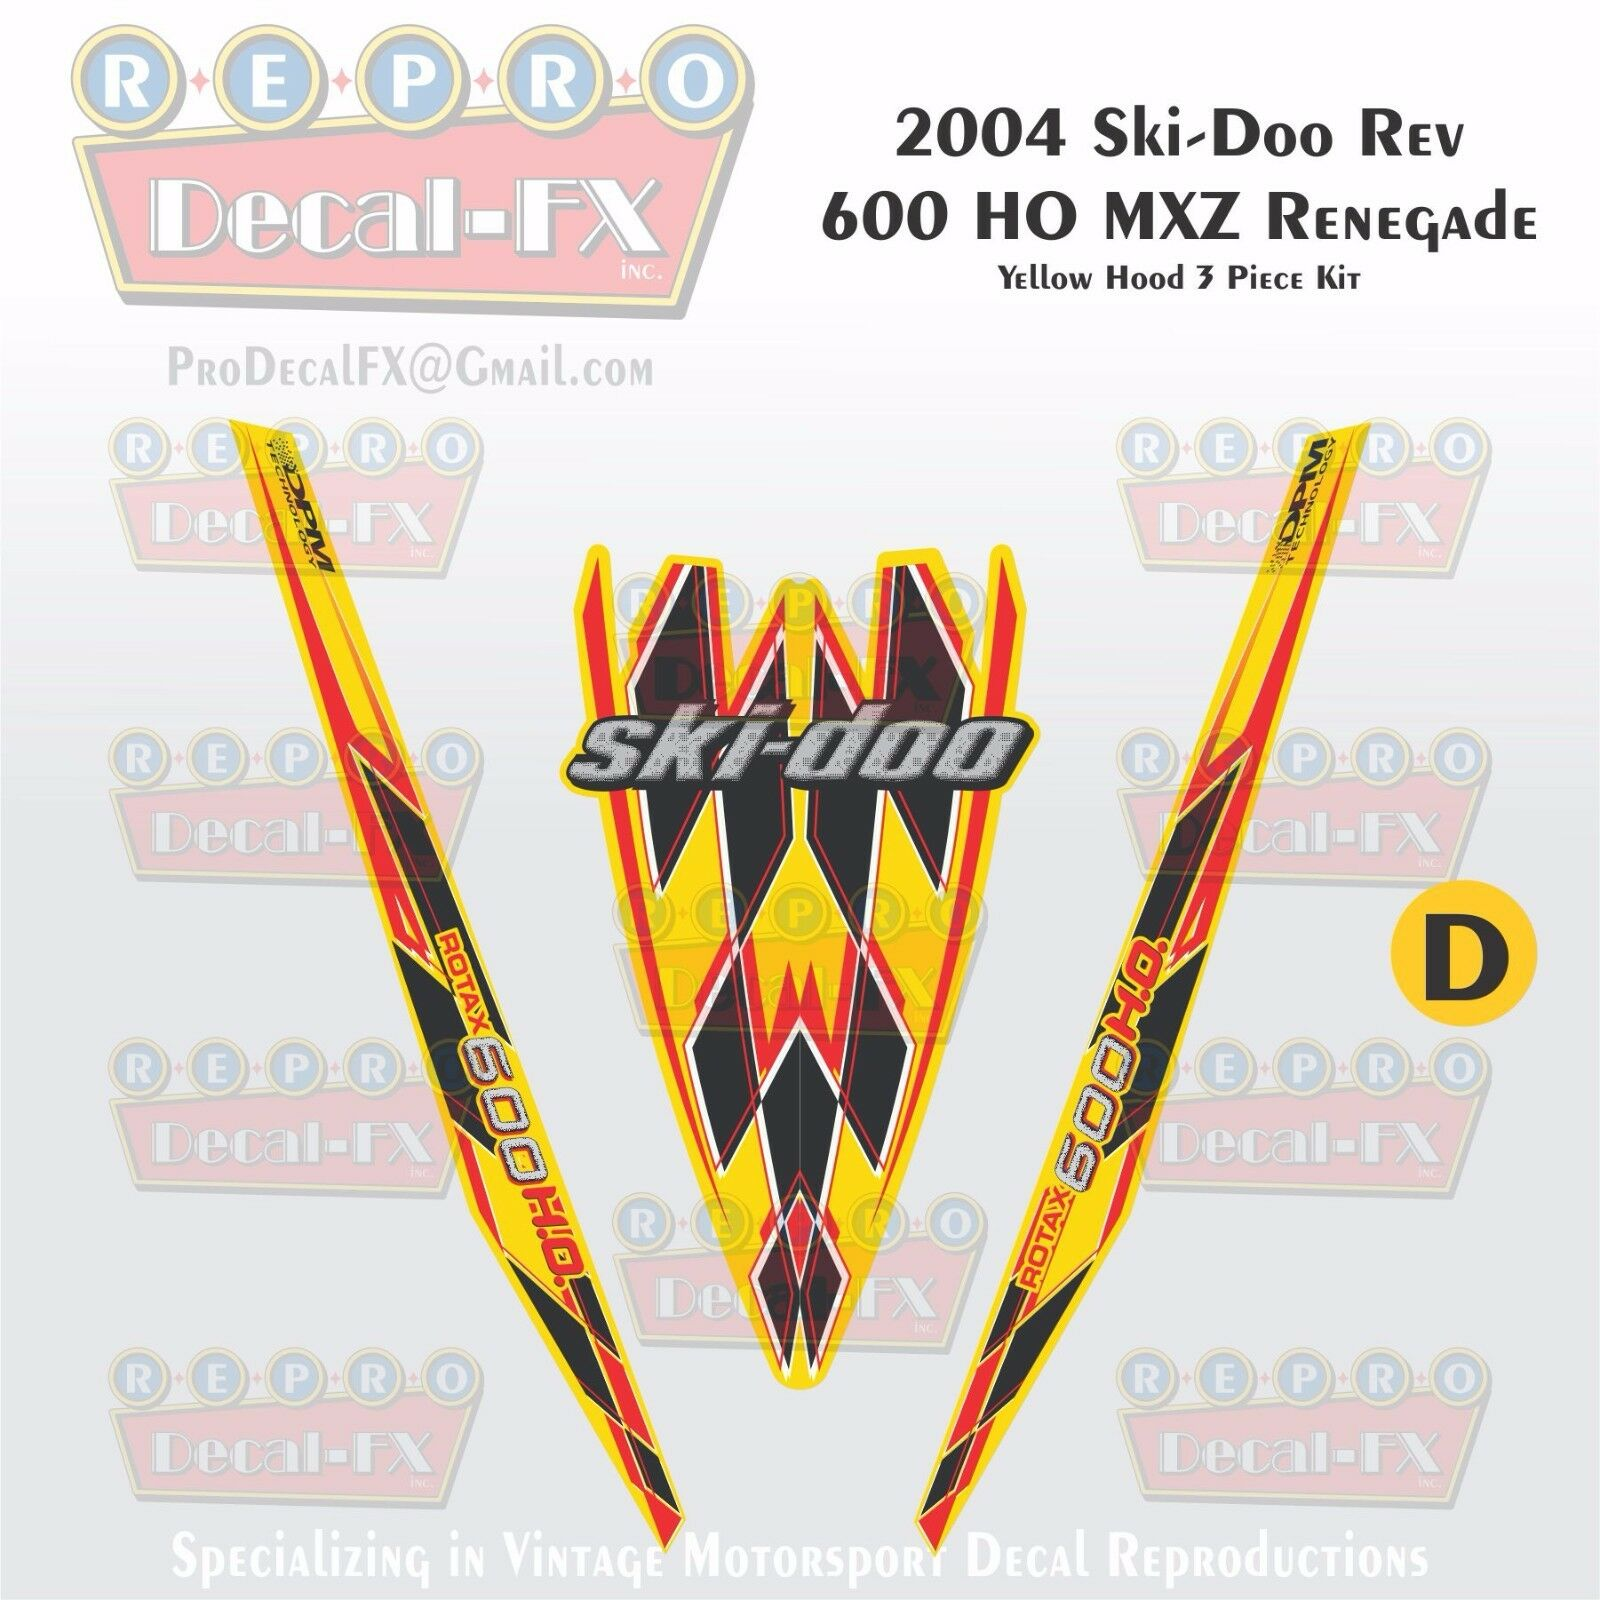 2004 Ski-doo Rev MXZ600HO Yellow  Hood Panel Reproduction Vinyl Decal Set 3Pc DPM  save up to 70%